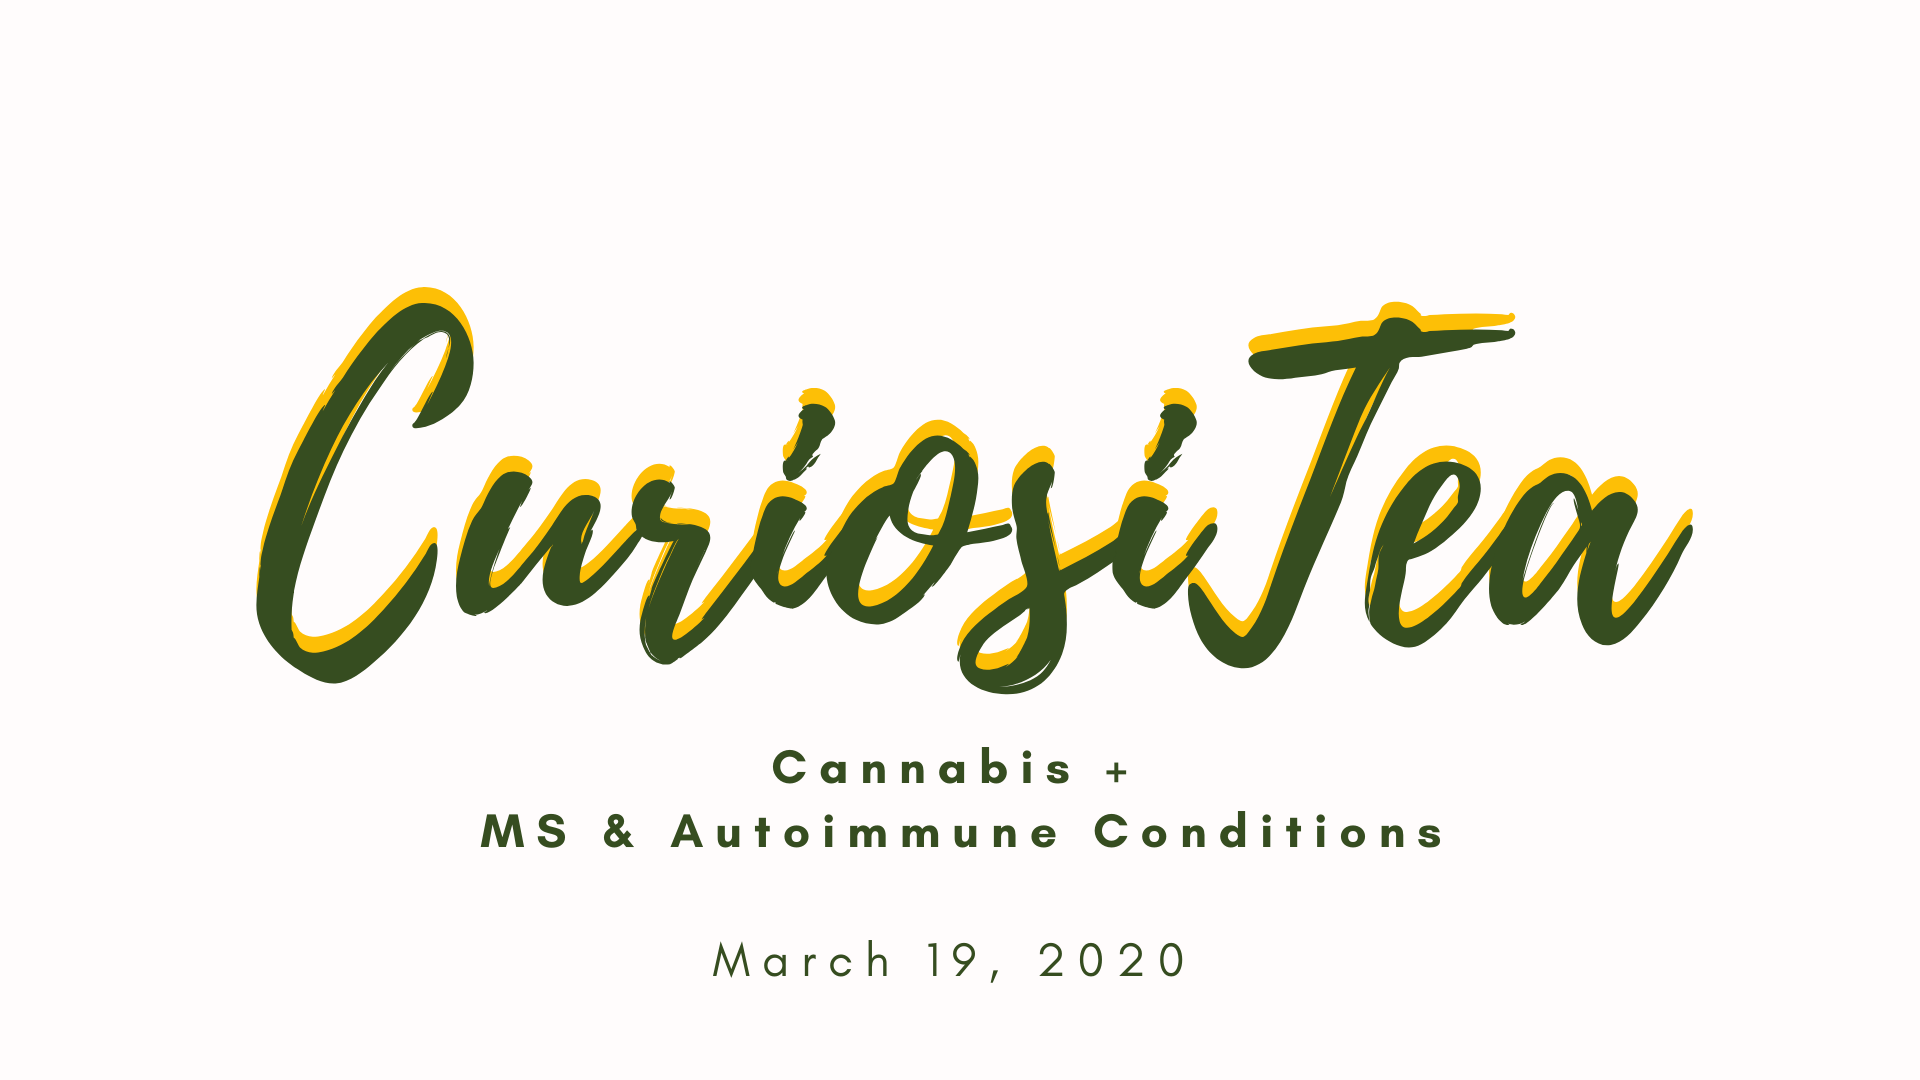 Curiositea: Cannabis + MS & Autoimmune Conditions